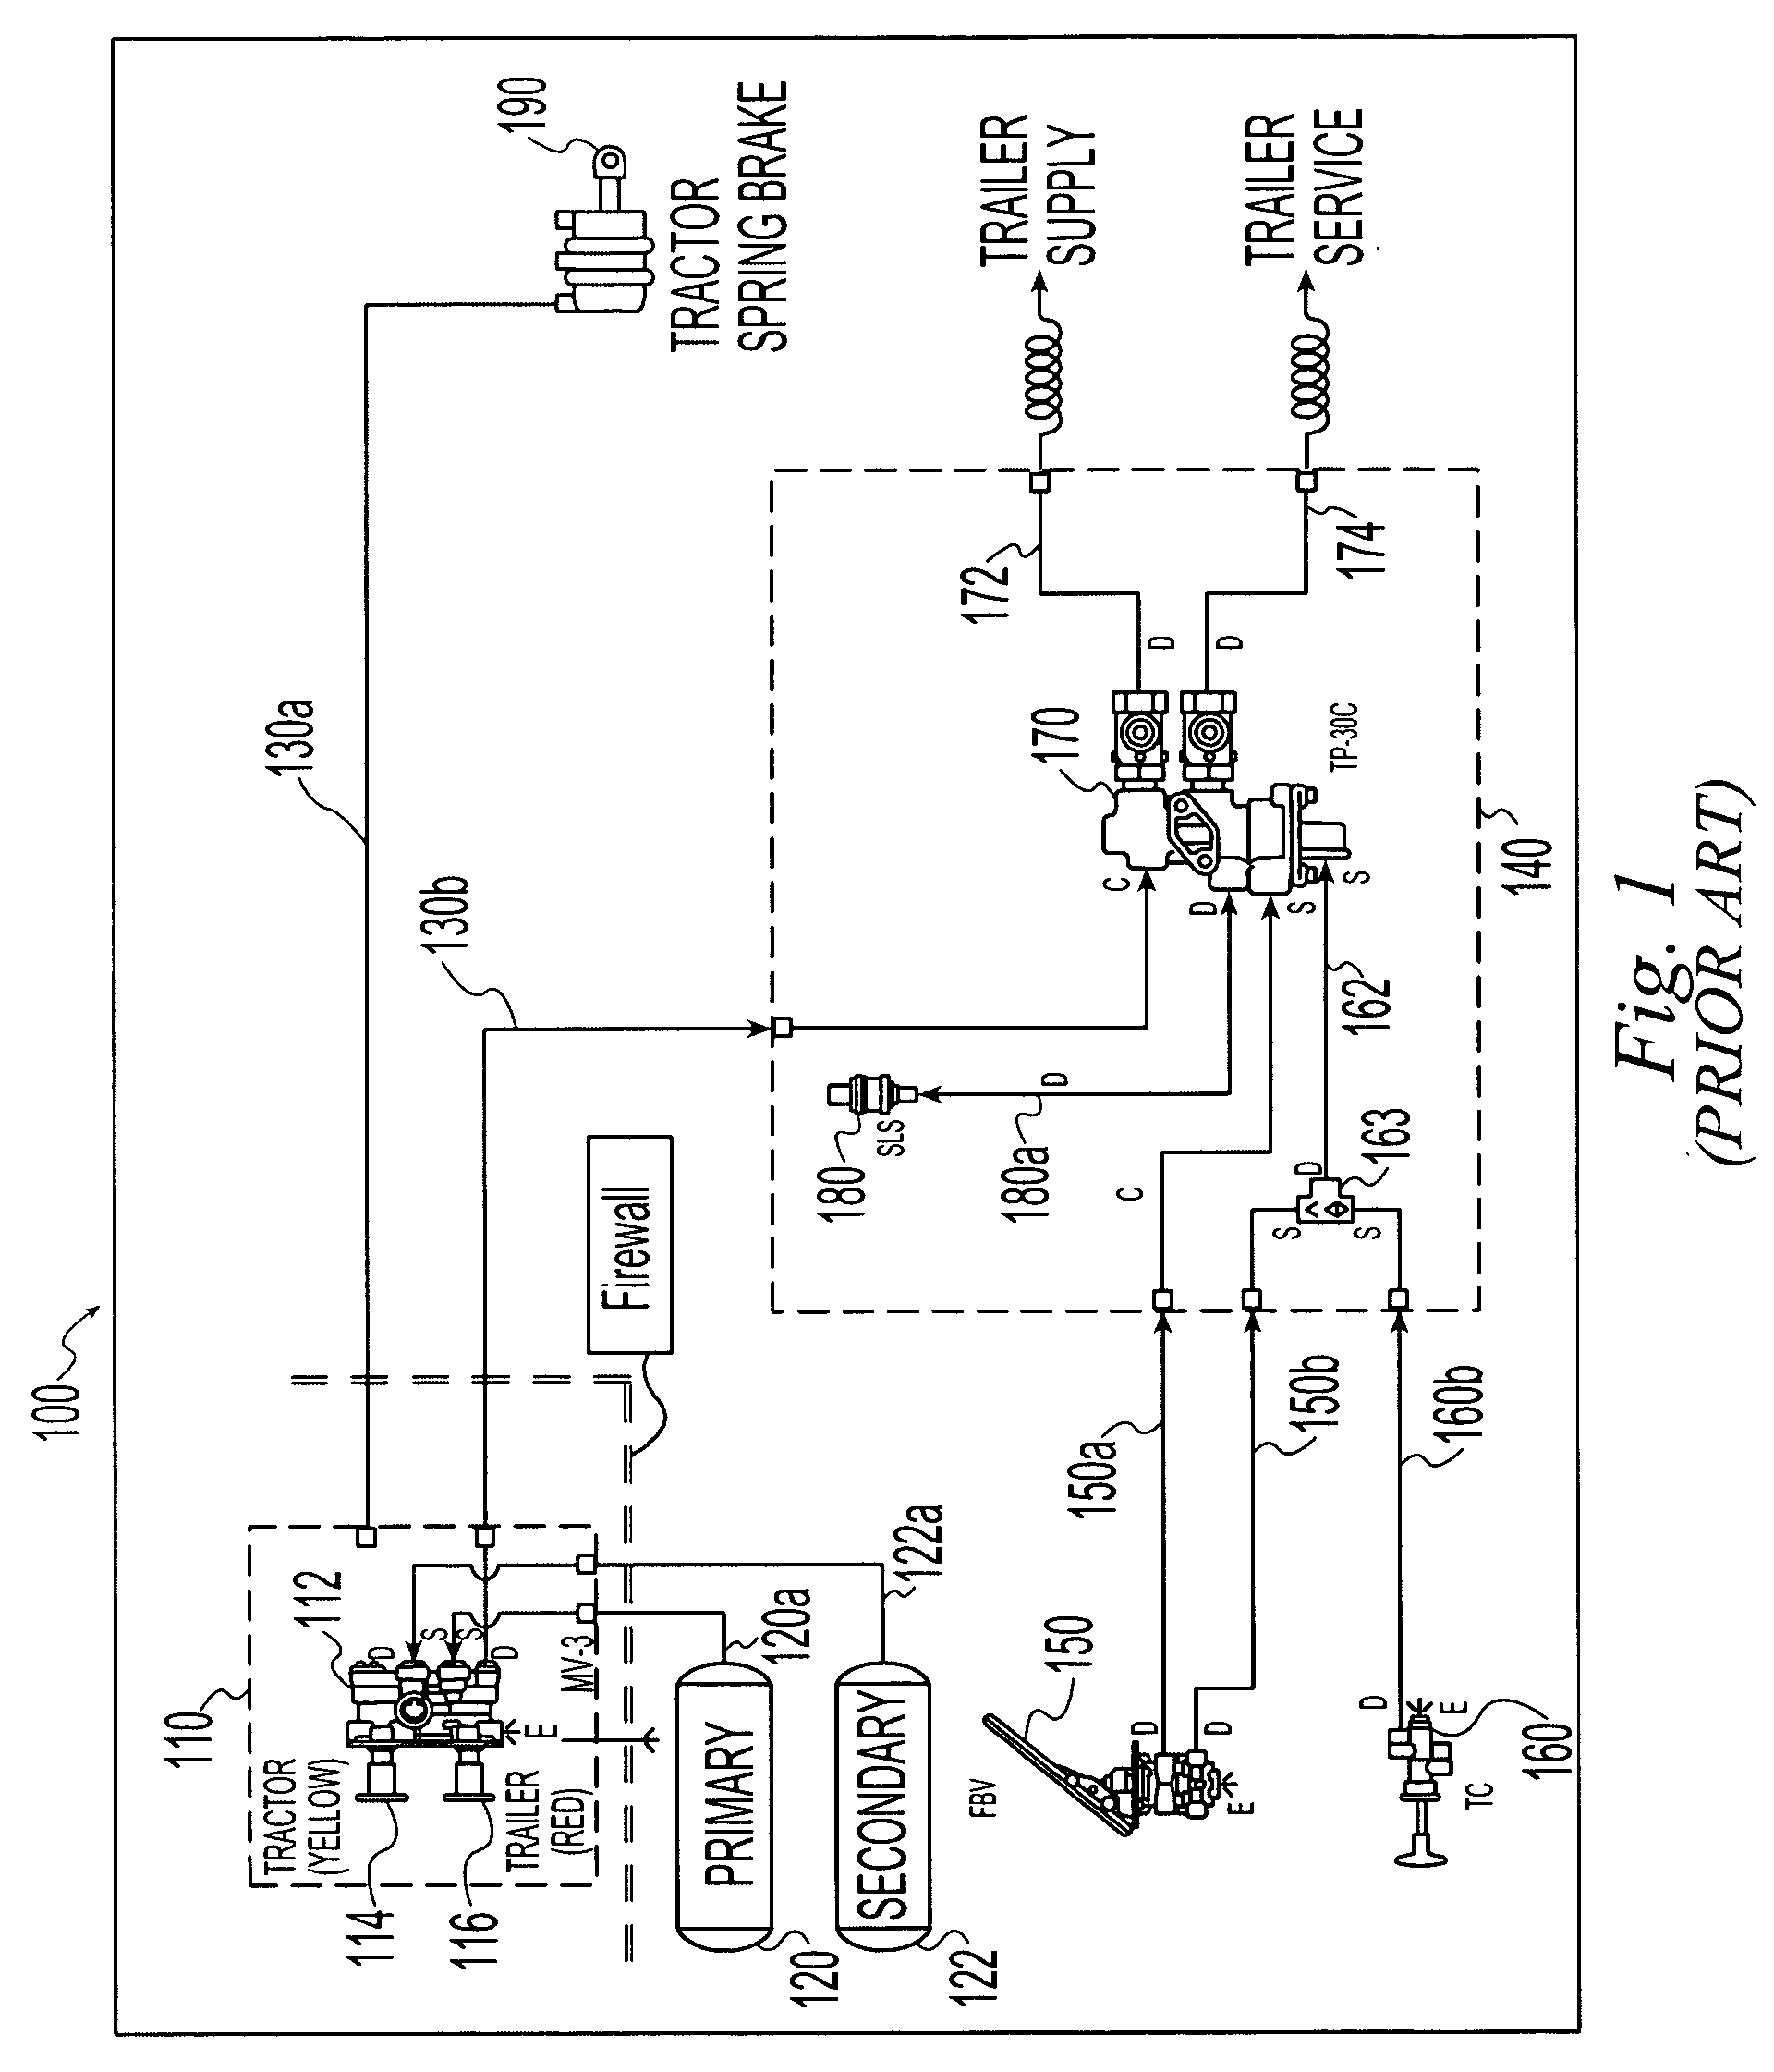 DIAGRAM] 1994 Freightliner Abs Wiring Diagrams FULL Version HD Quality Wiring  Diagrams - TOGGLEDWIRING.CONTOROCK.ITCONTO ROCK